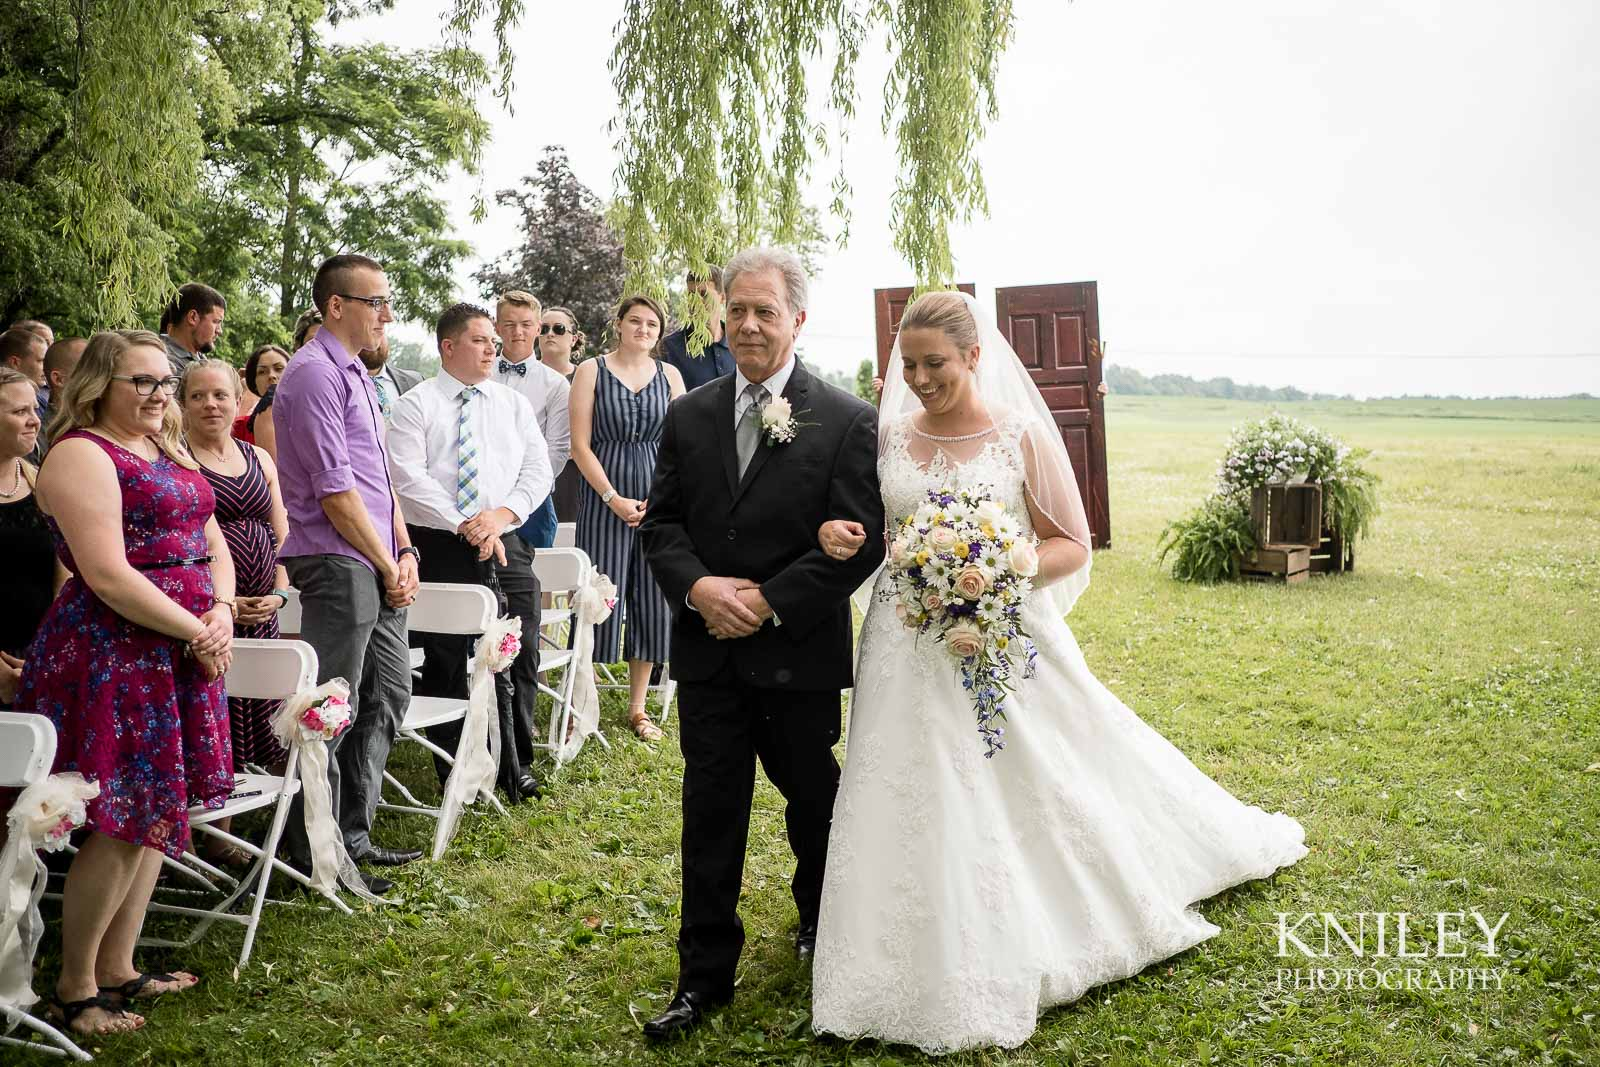 20-Jerris-Wadsworth-Wedding-Barn-Rochester-NY-Wedding-Photography.jpg